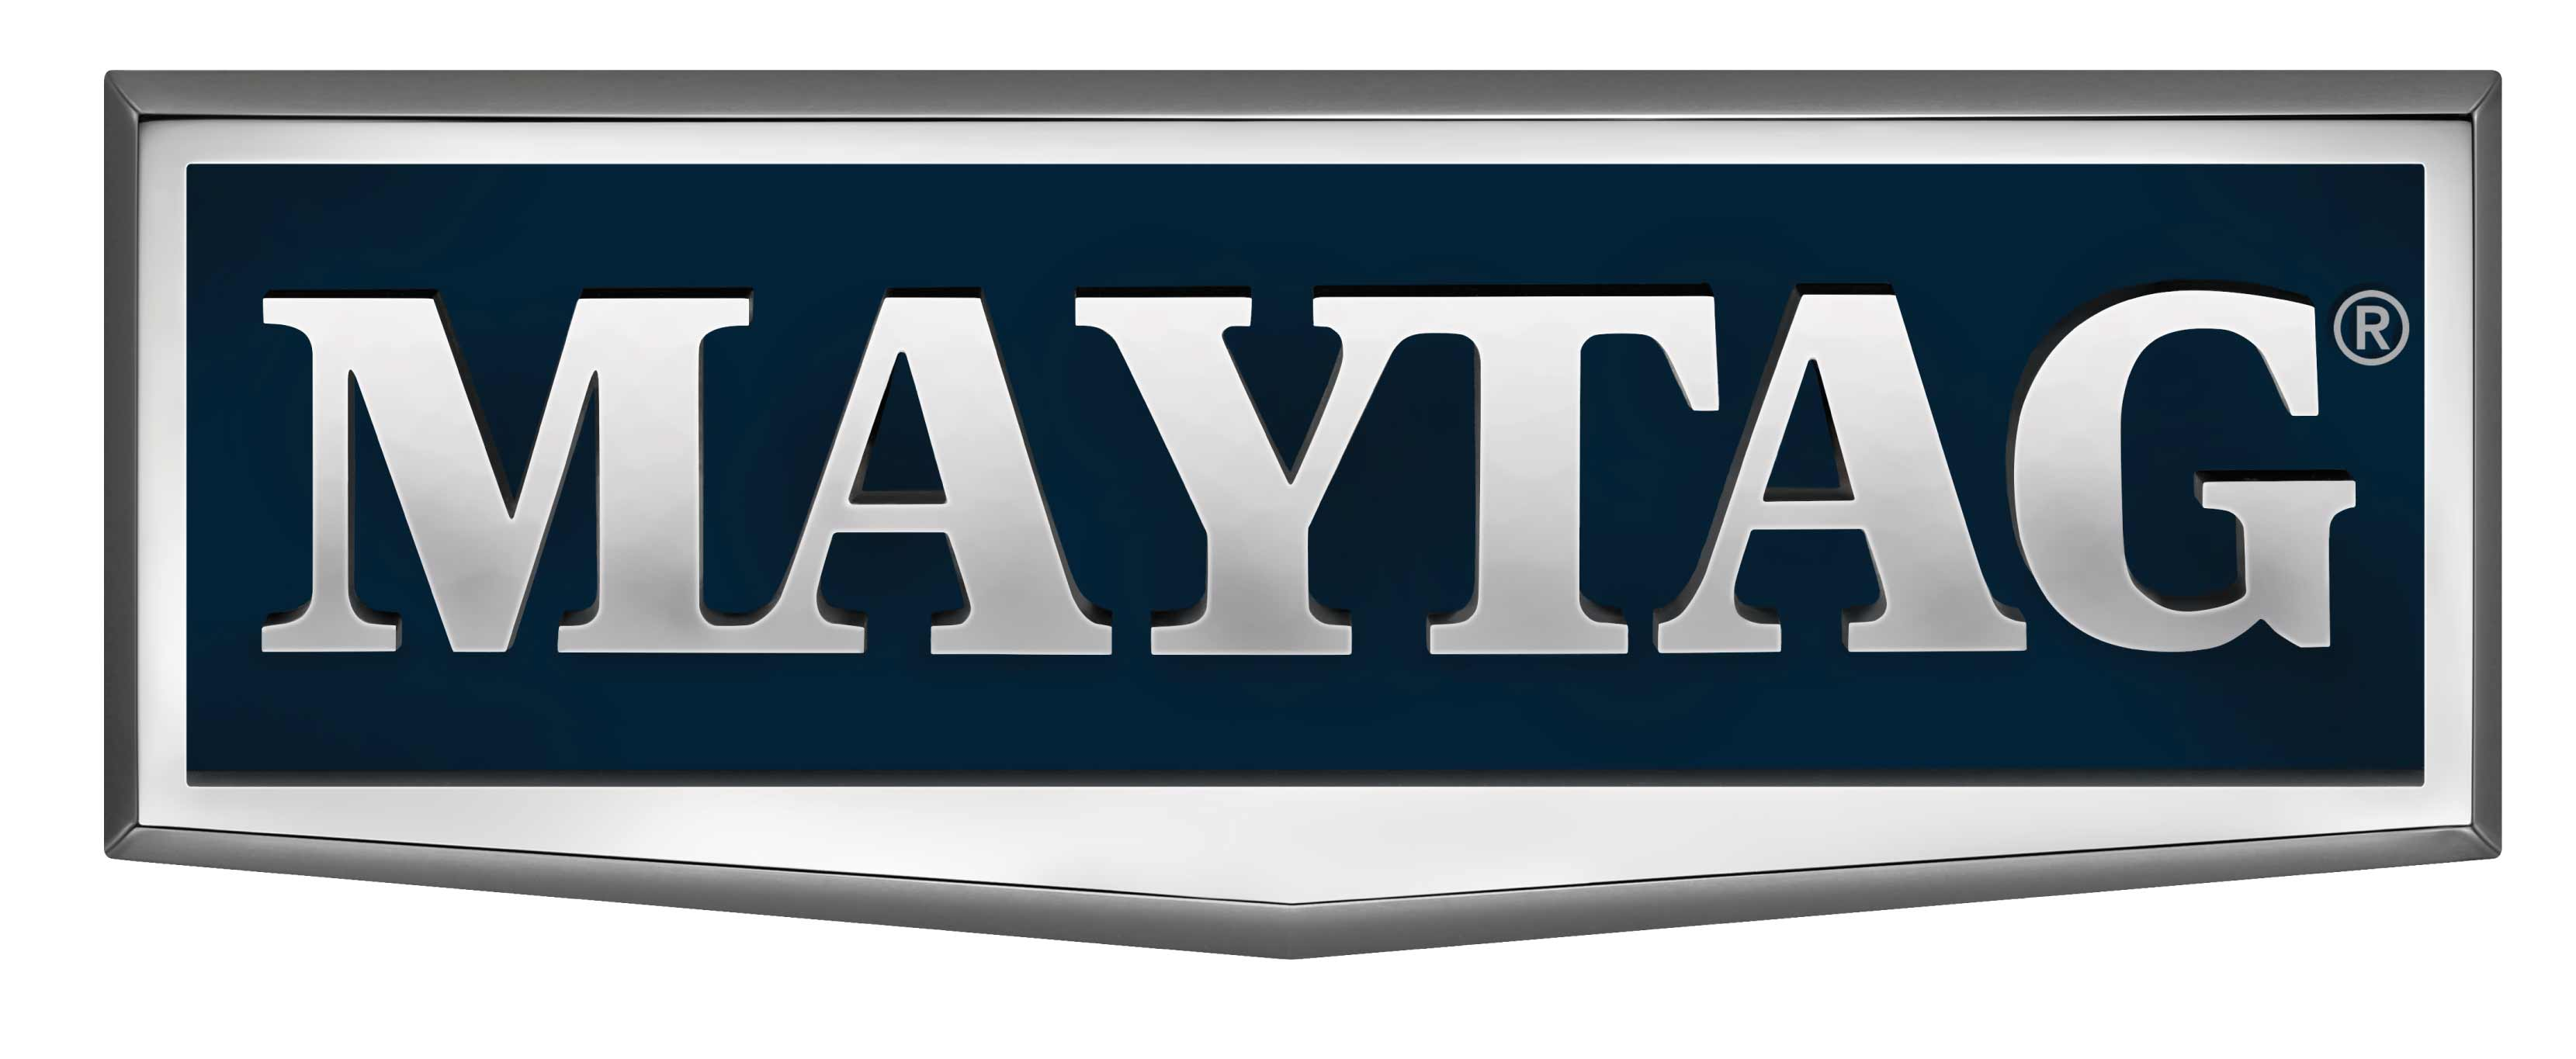 Maytag Appliance Repair New Jersey